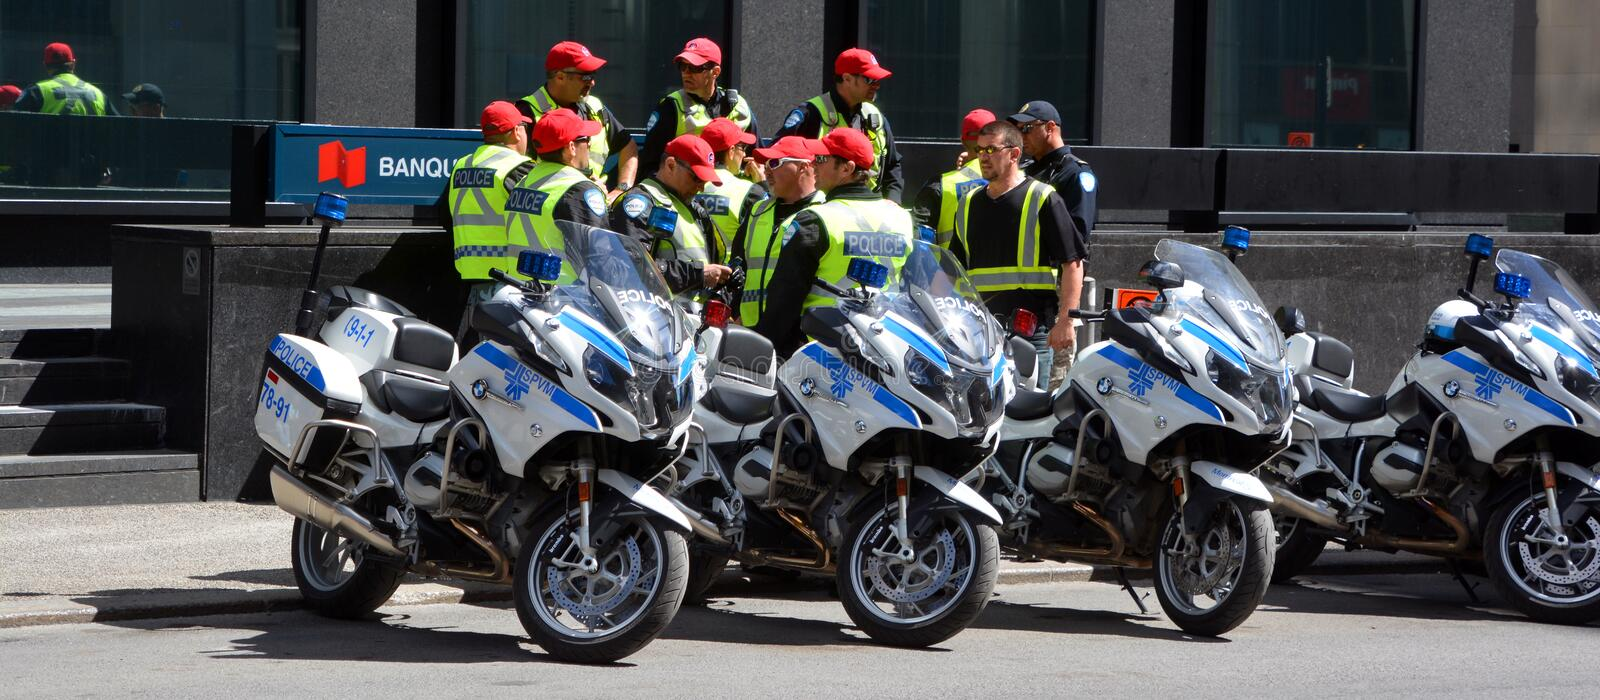 Montreal motorcycle cop stock photography